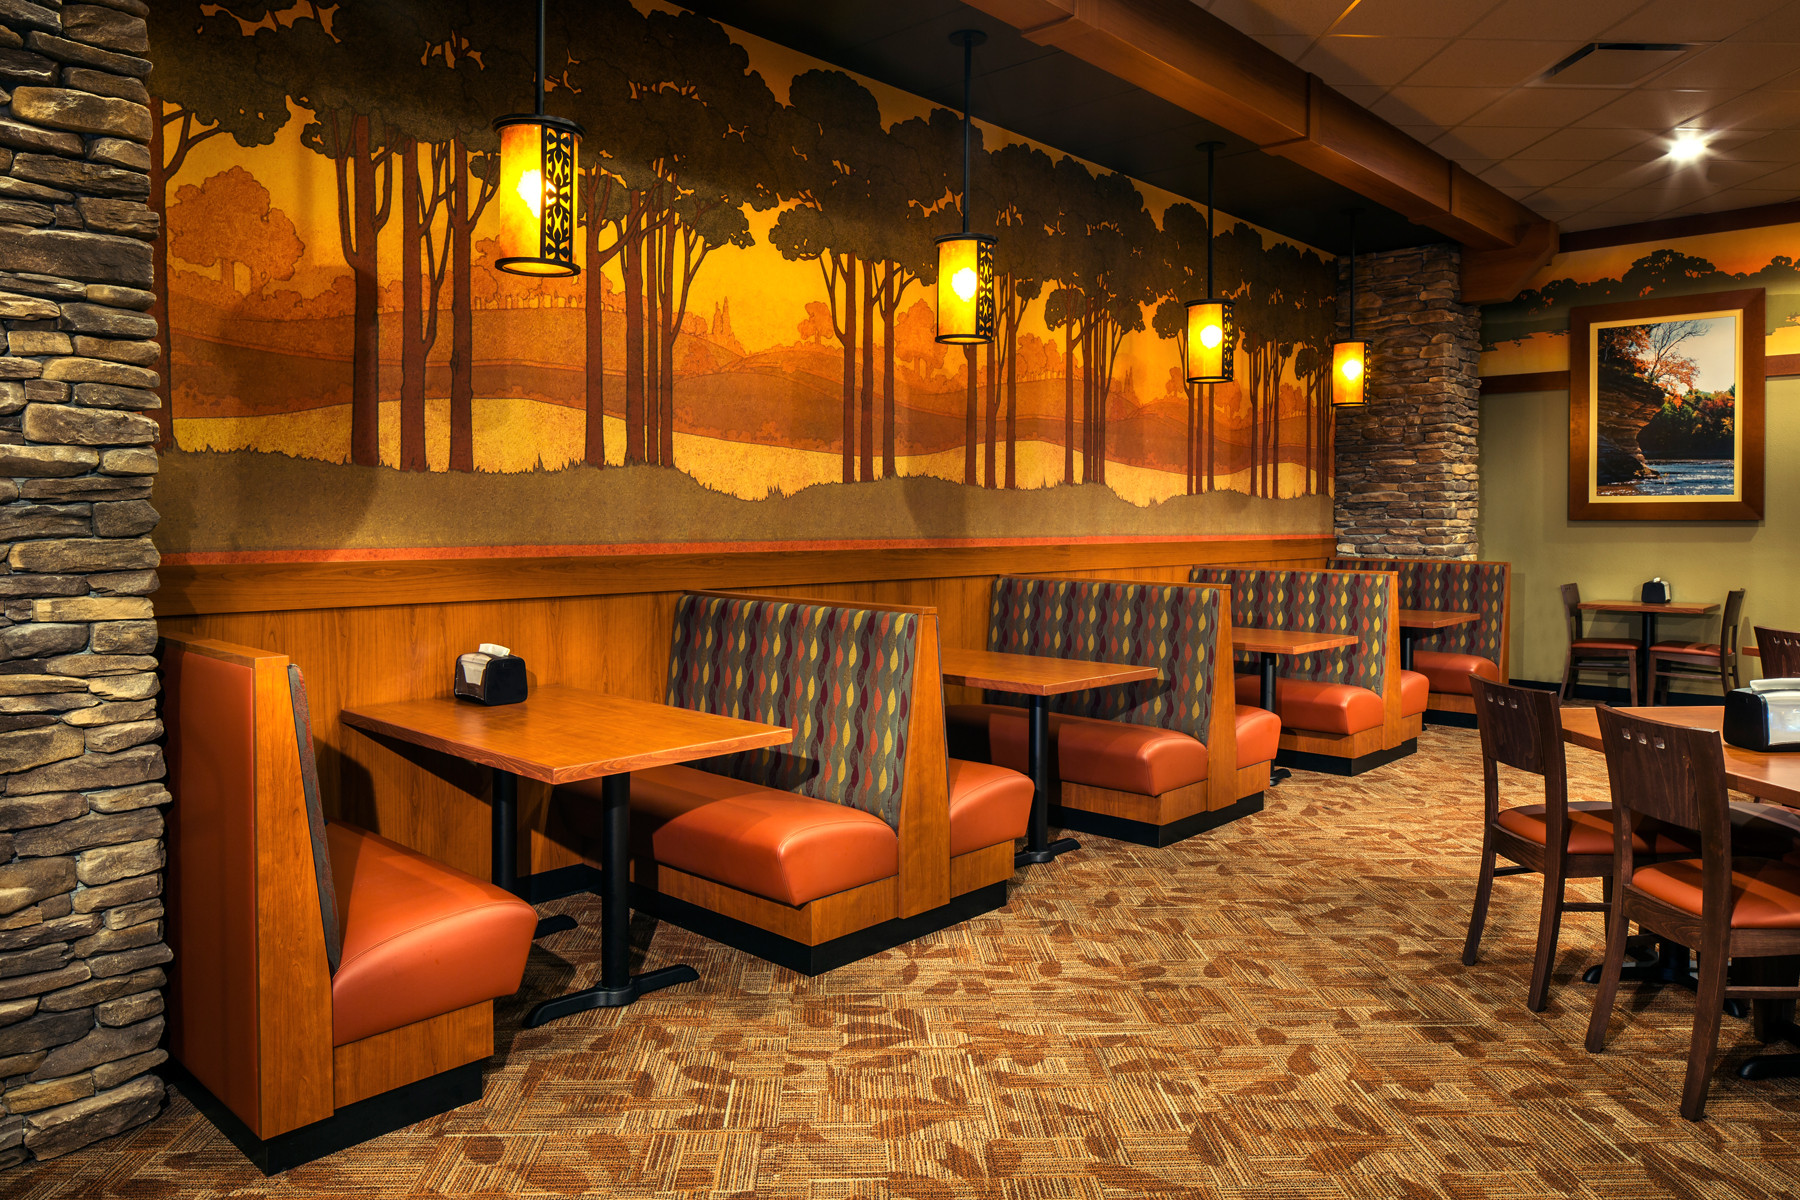 Restaurant Chairs And Tables Top Reasons Restaurant Customers Prefer Booths Over Tables Color